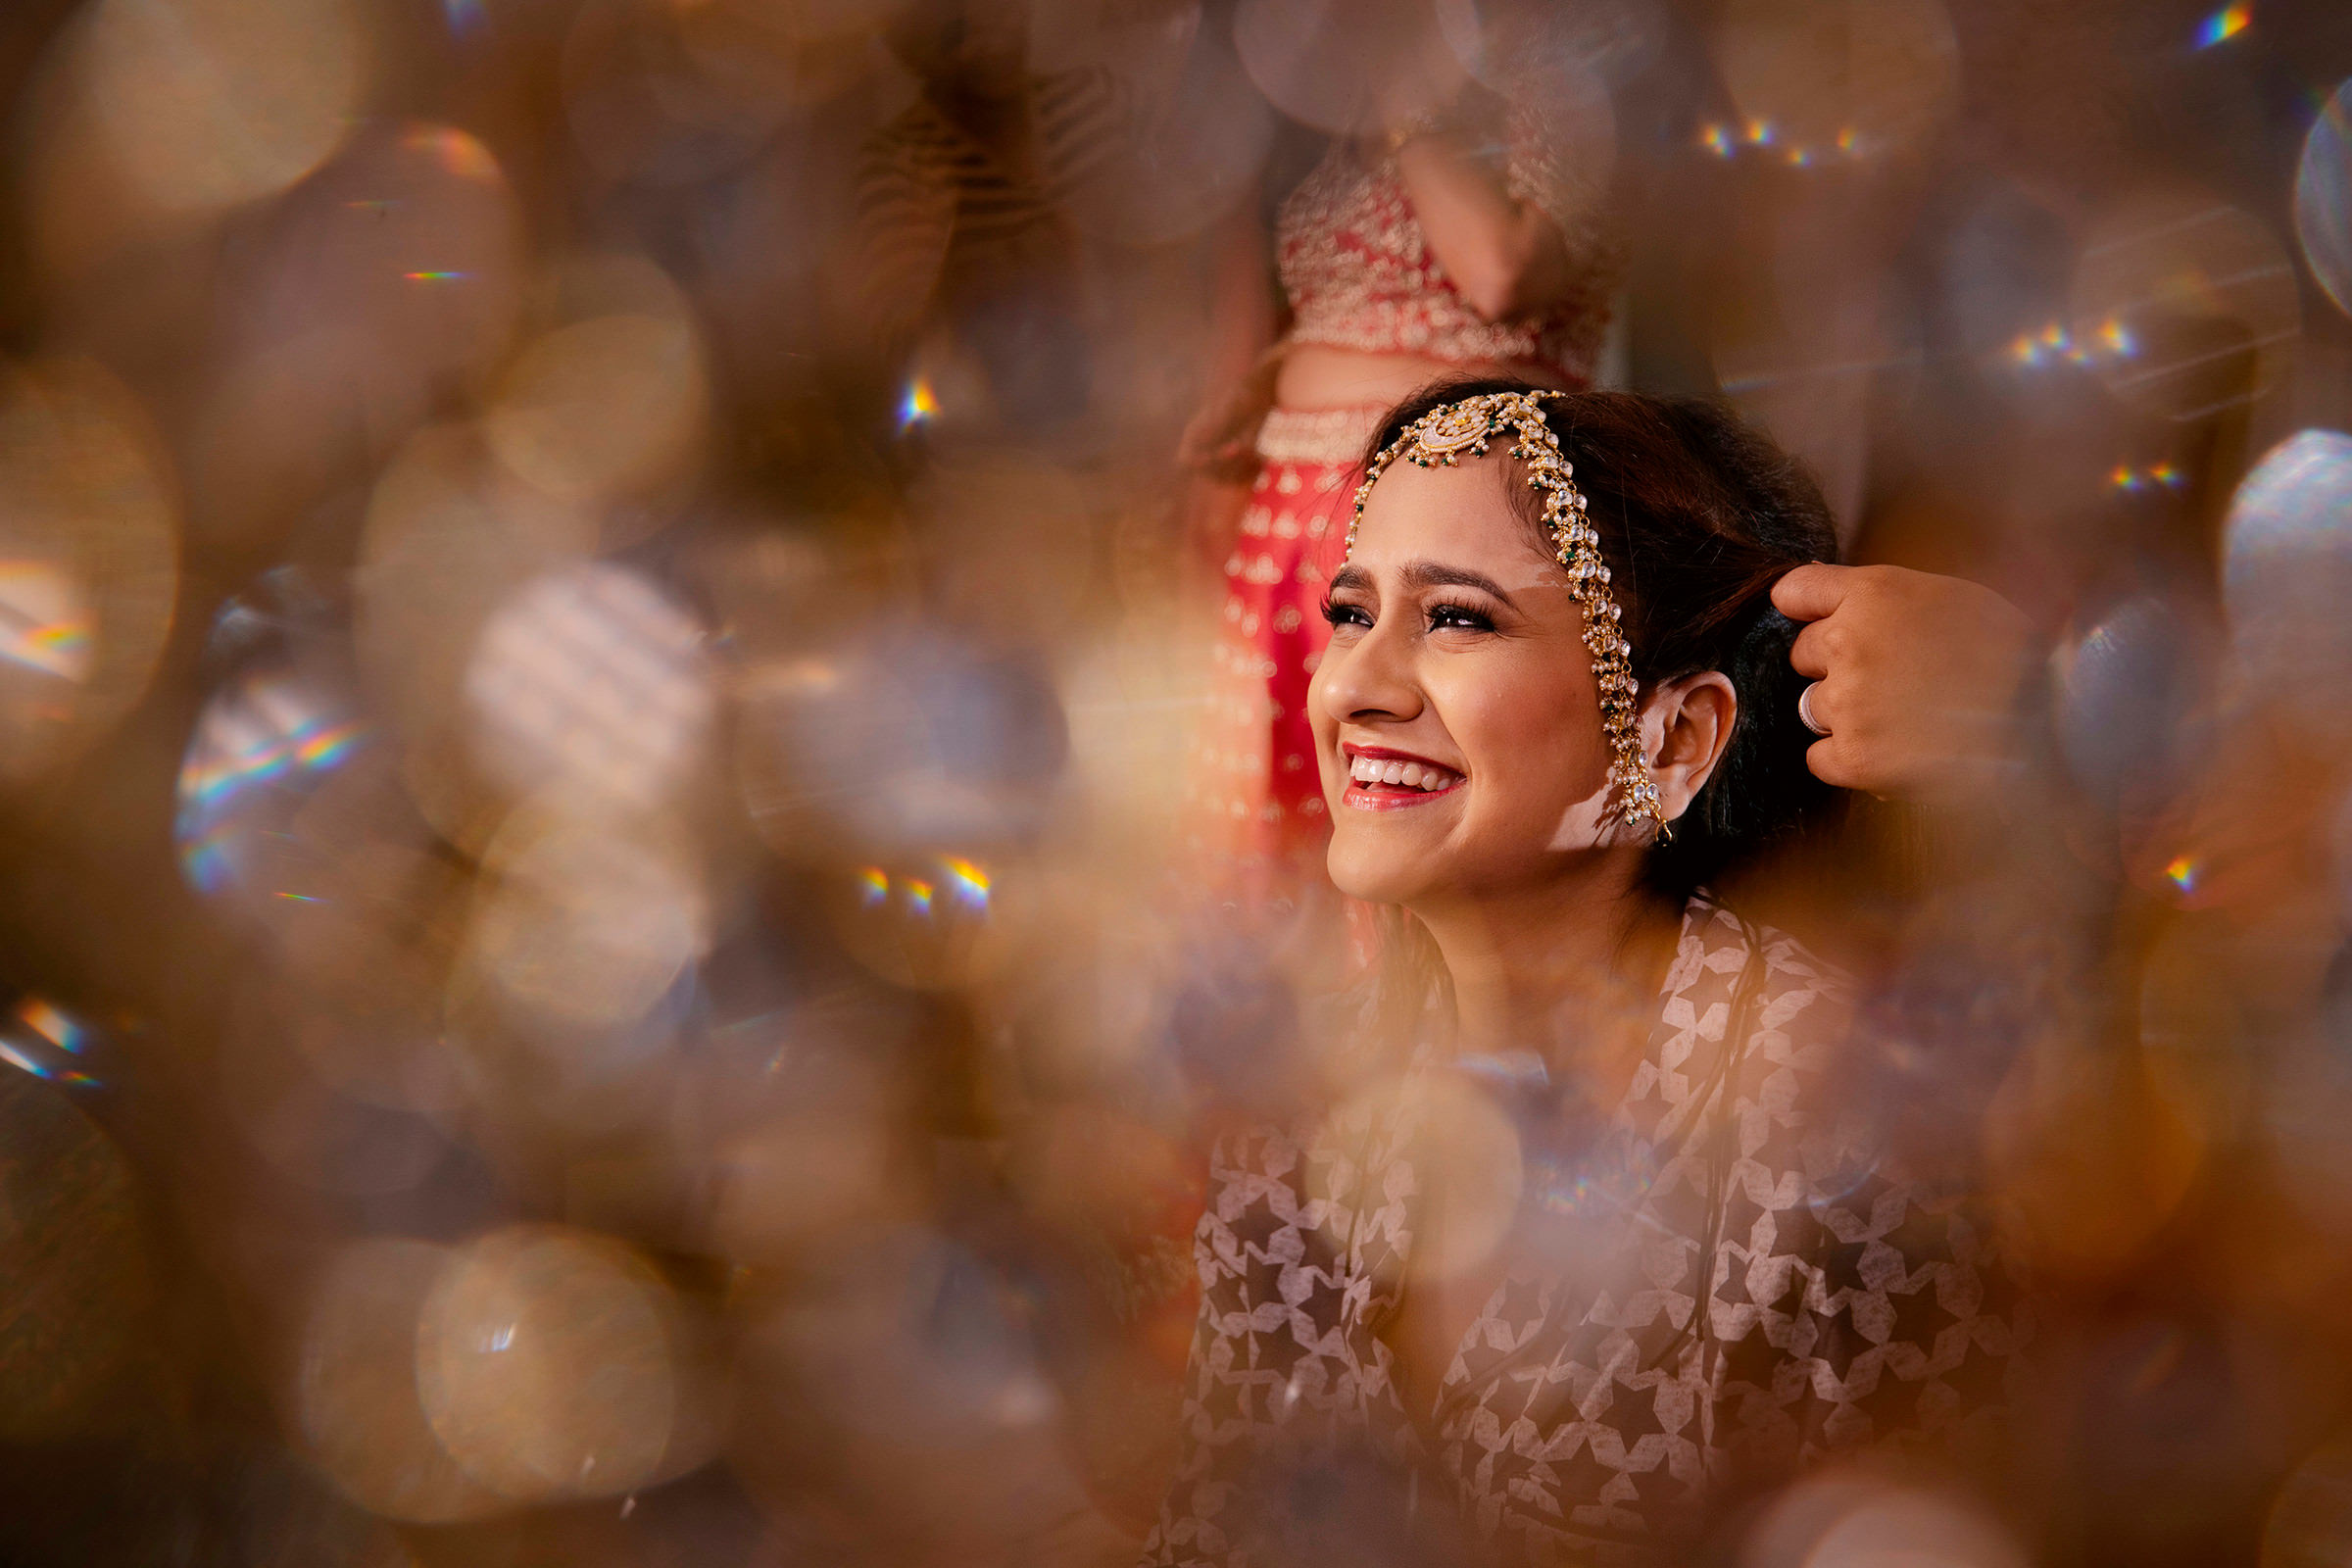 Smiling Bride - photo by Shutterink Photography